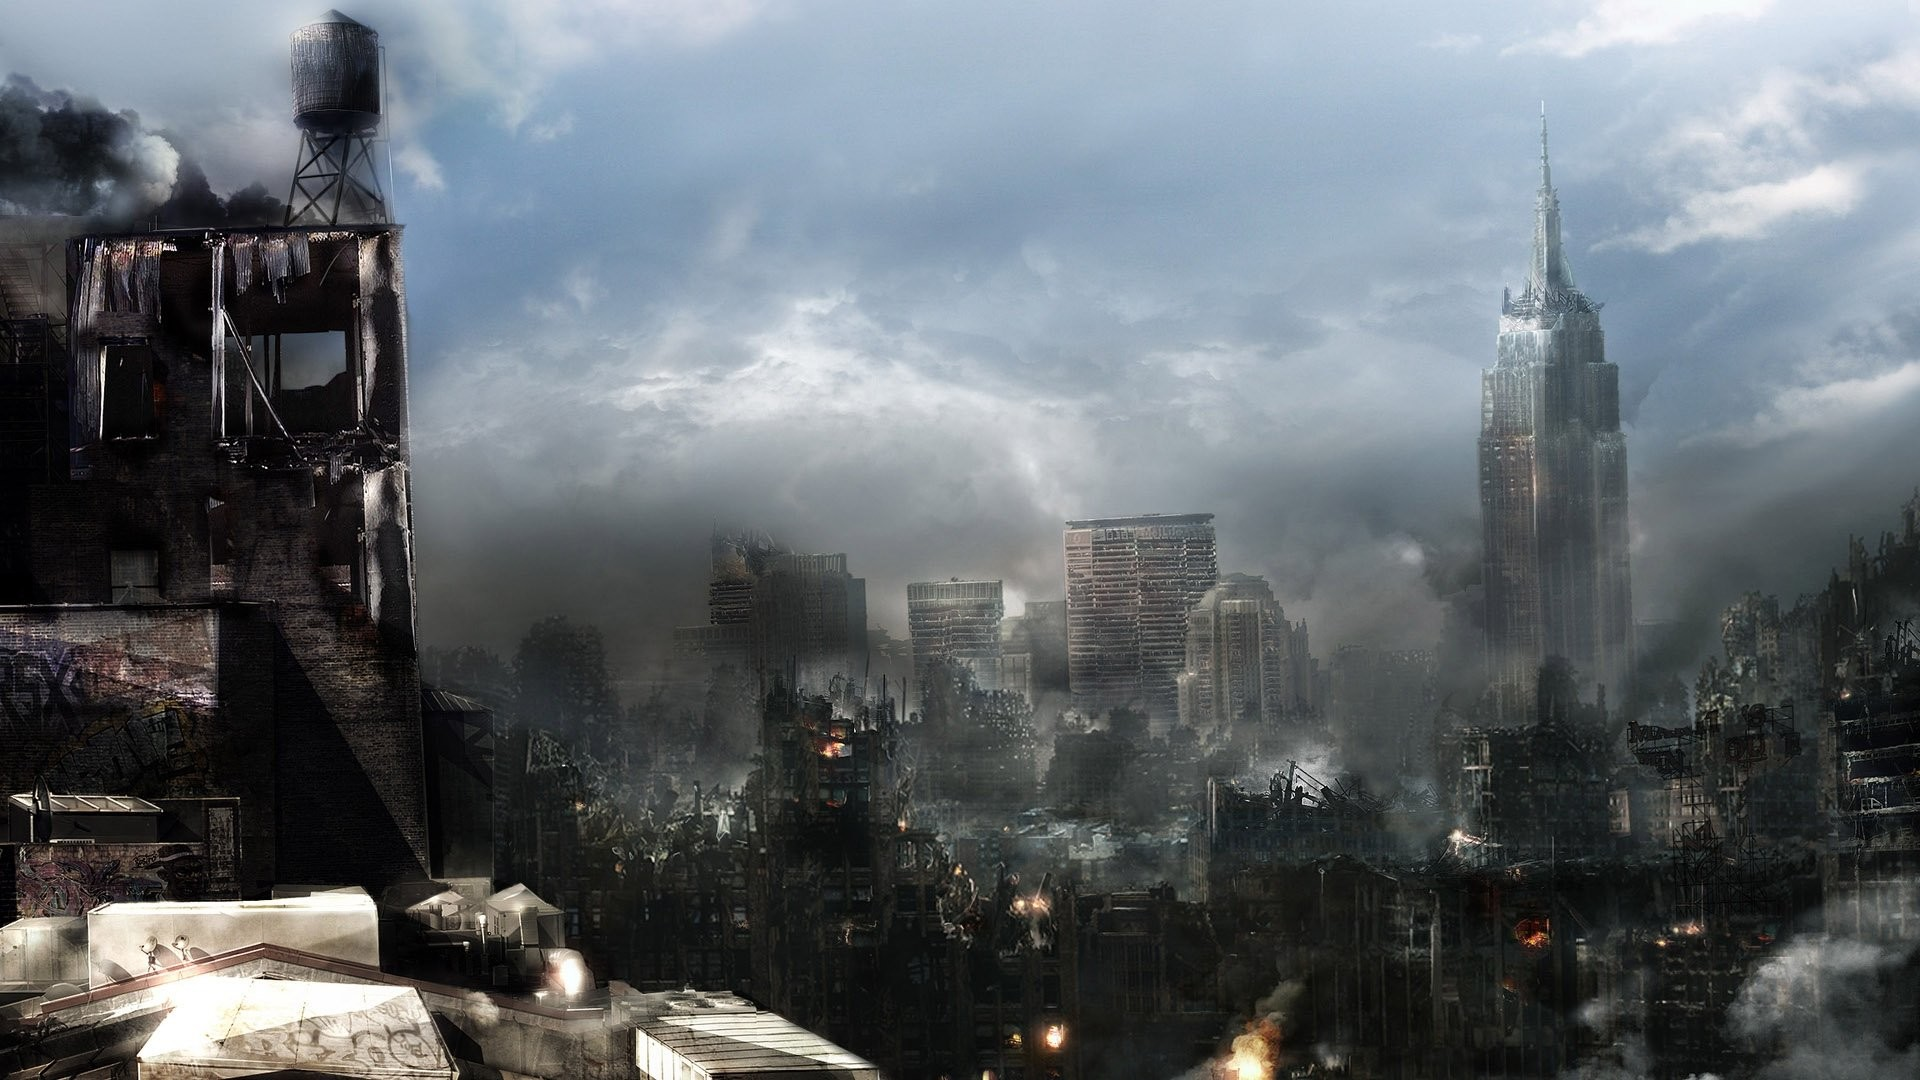 Destroyed City 328573 …